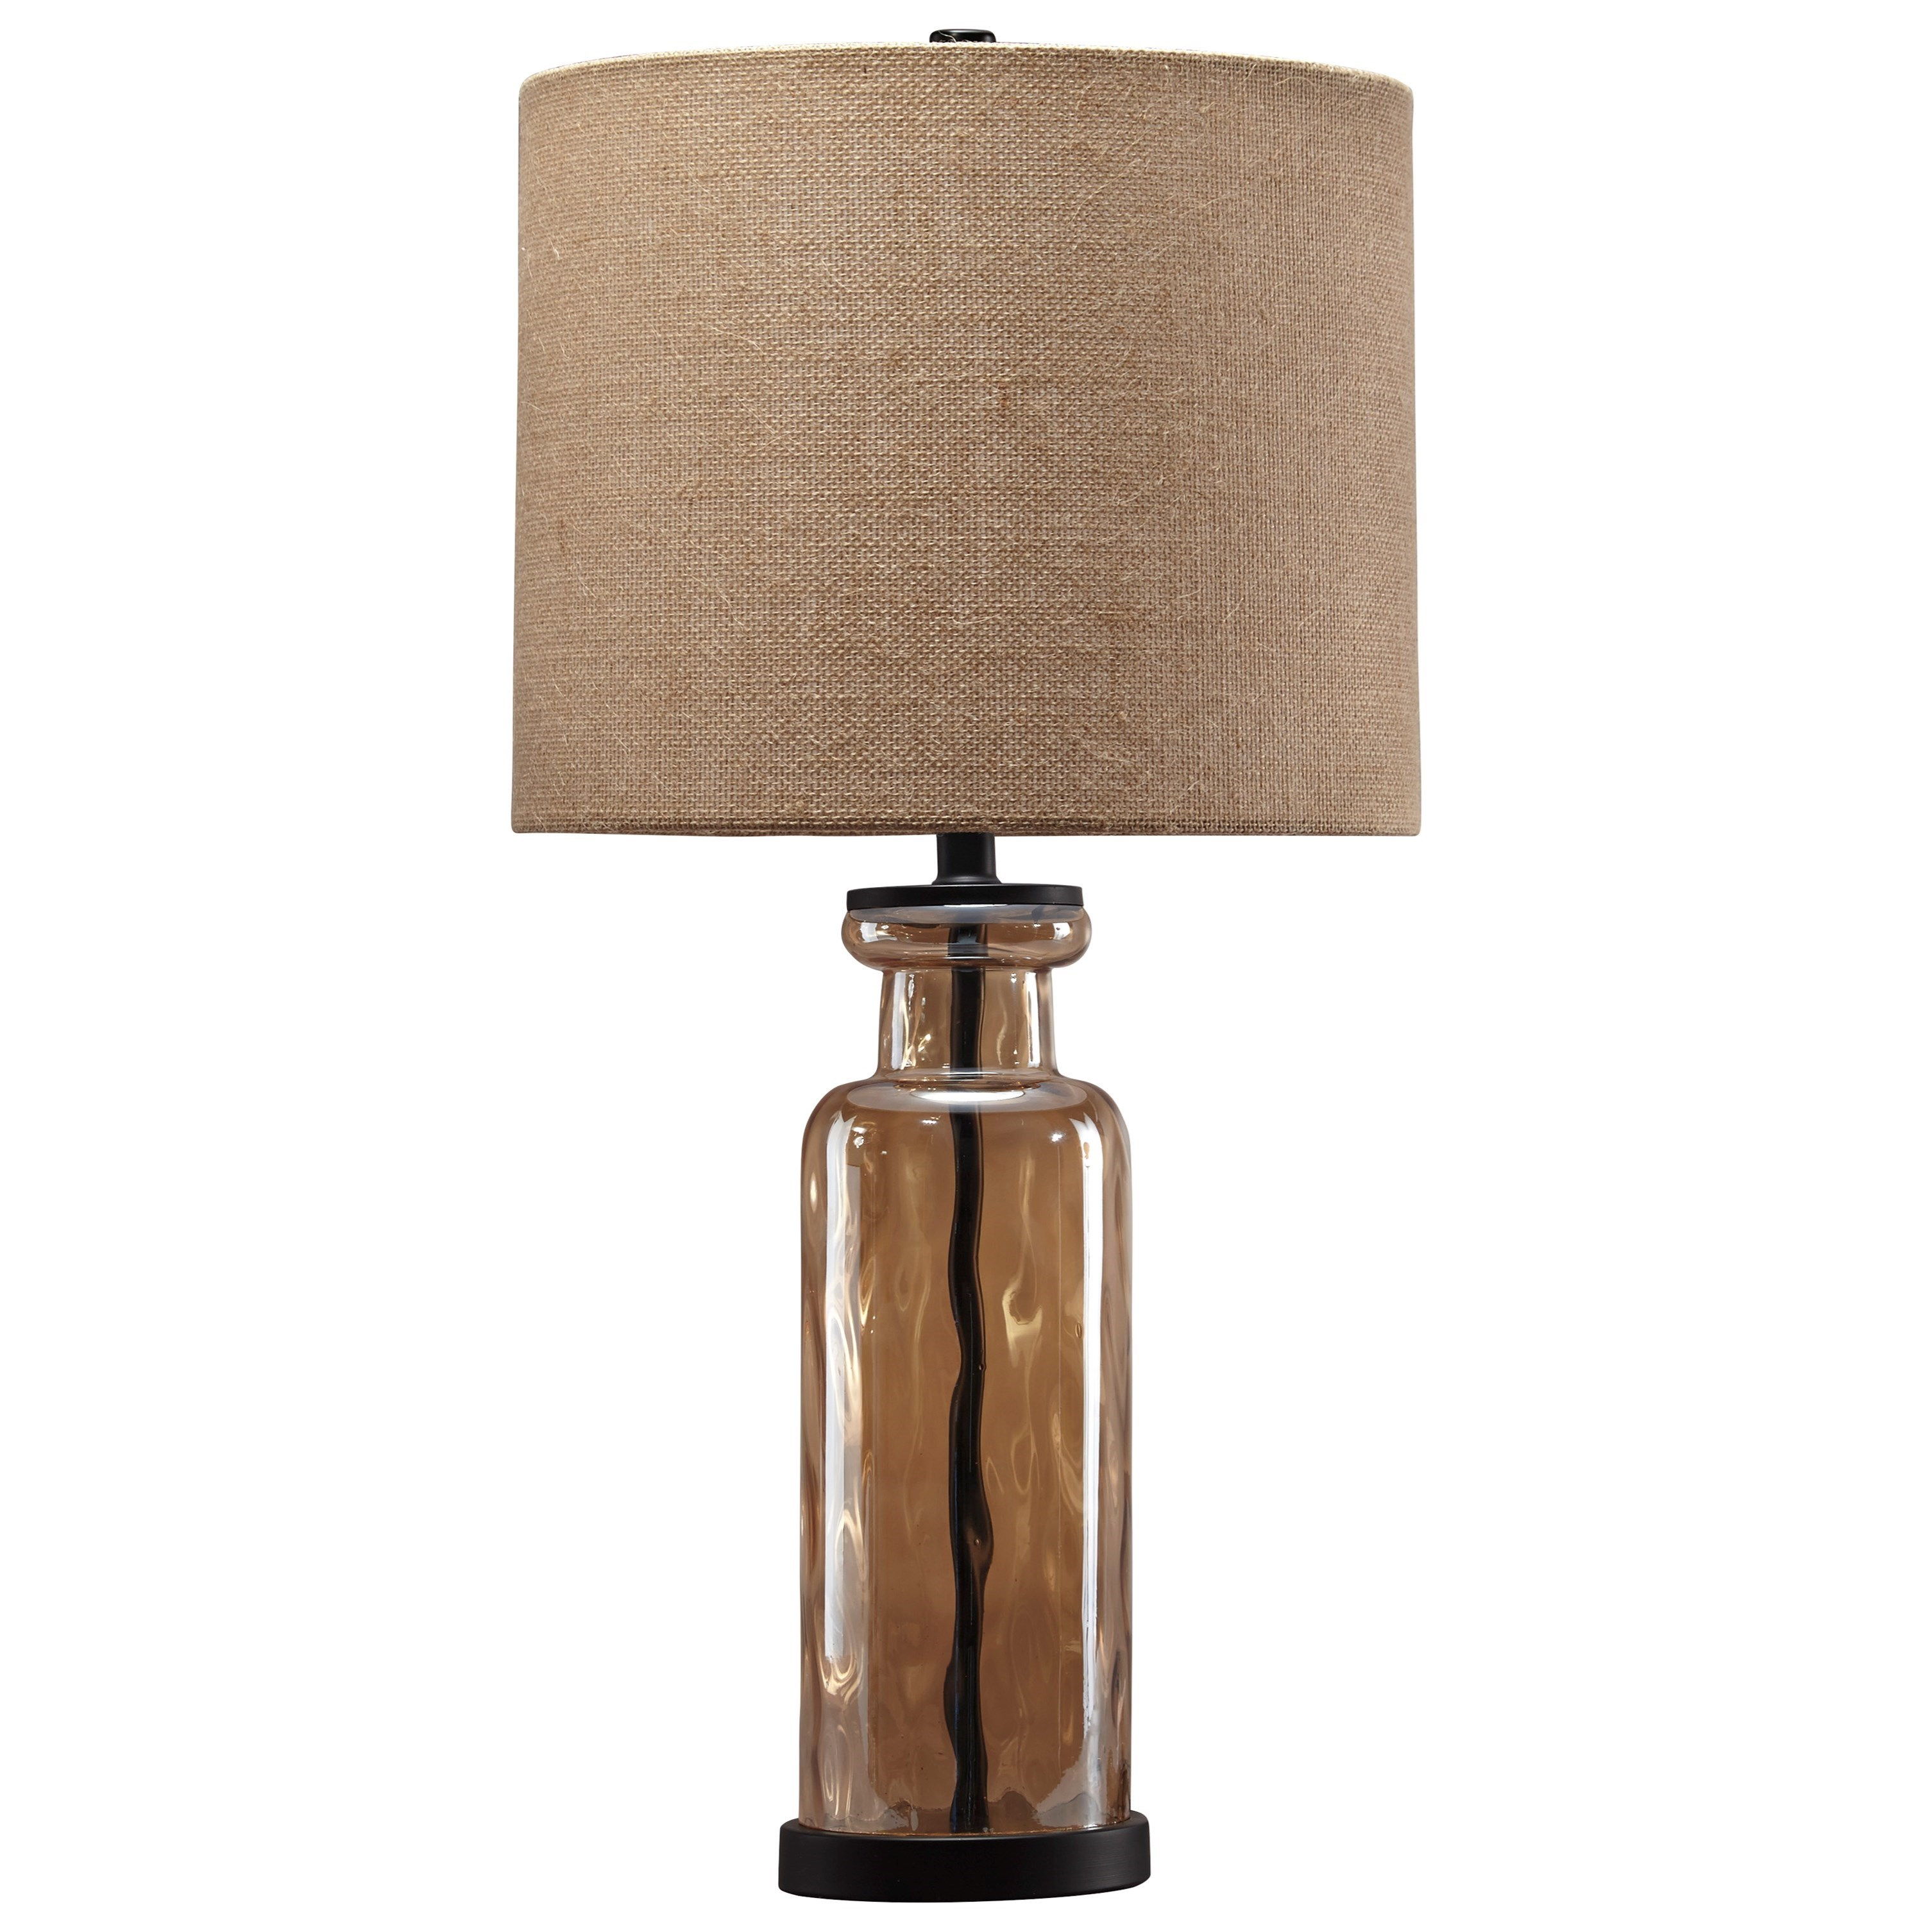 Lamps - Vintage Style Laurentia Champagne Glass Table Lamp by Signature Design by Ashley at Northeast Factory Direct